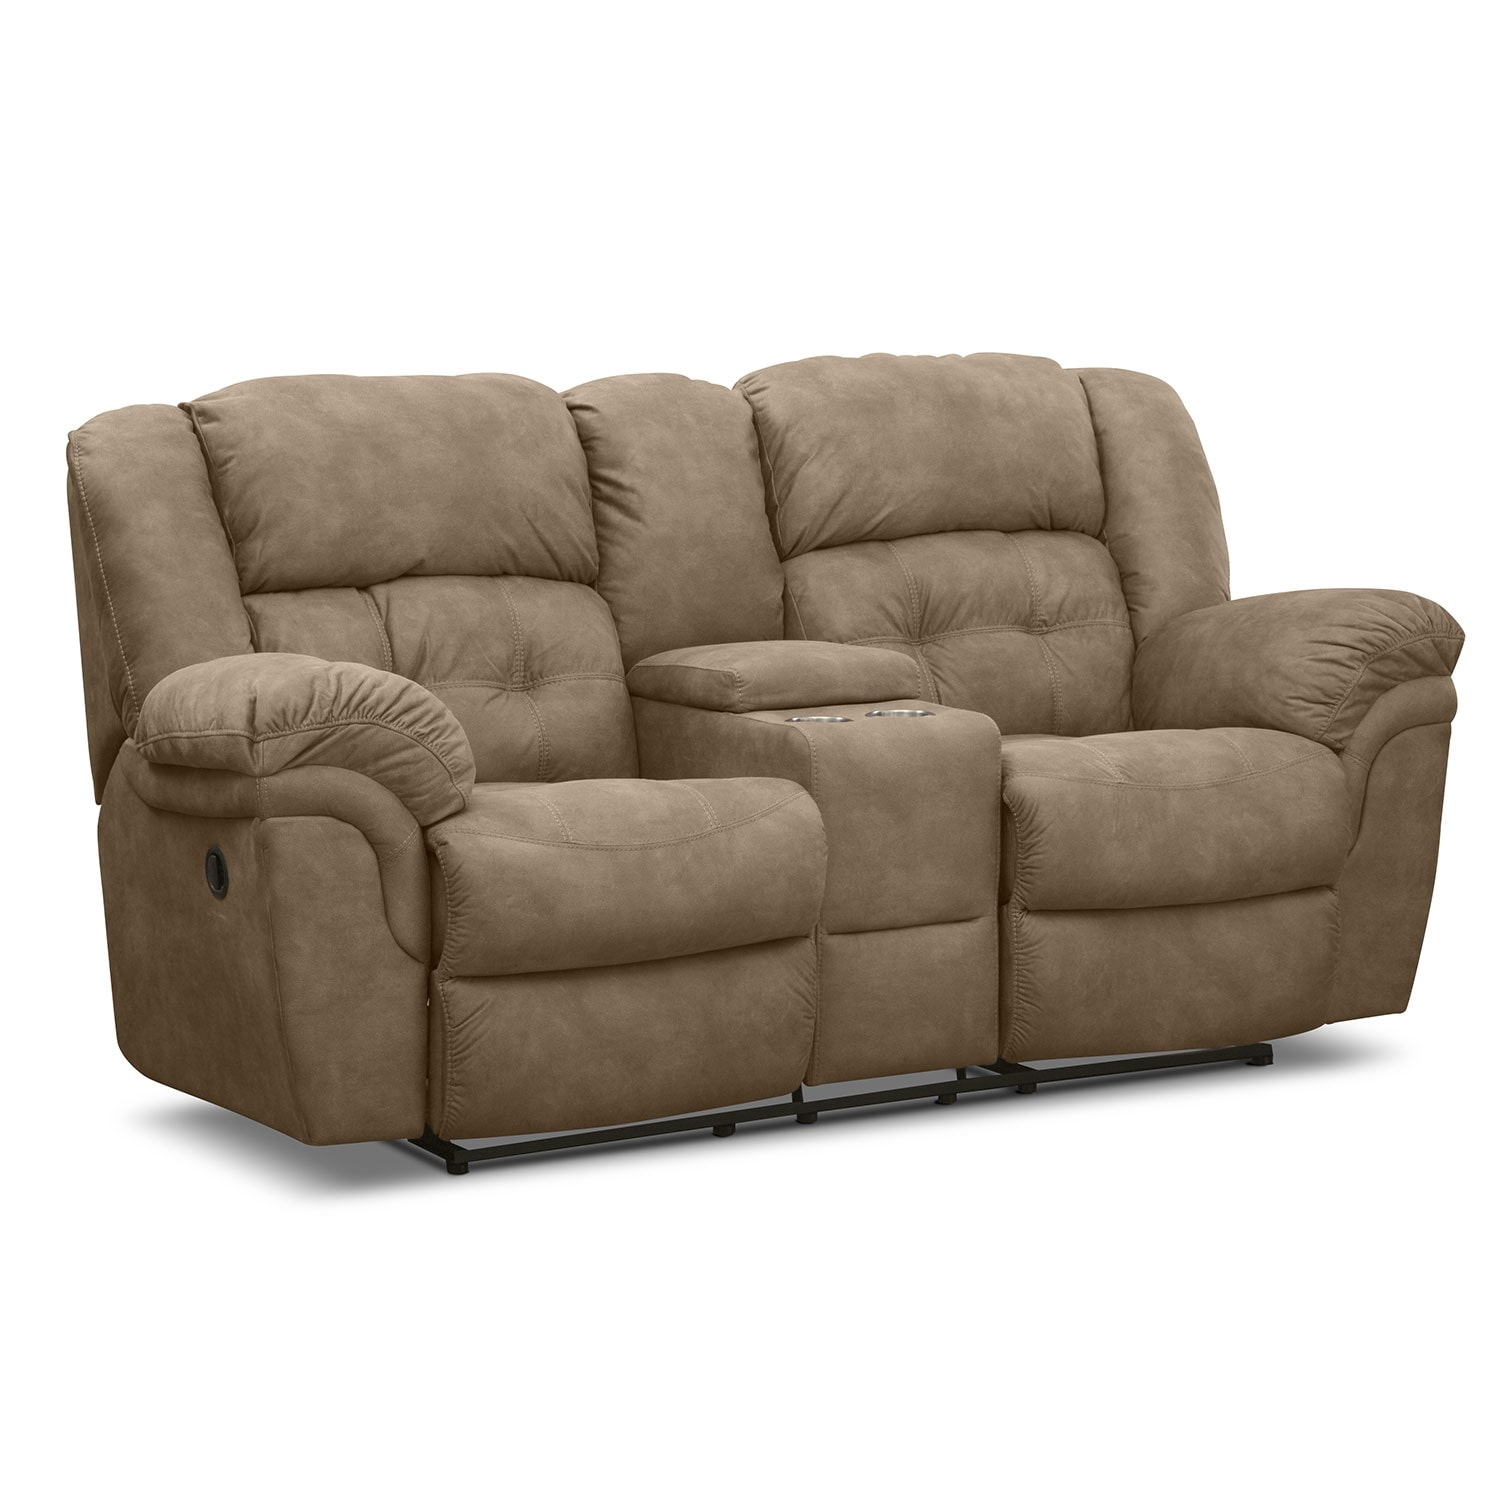 Loveseat With Recliners